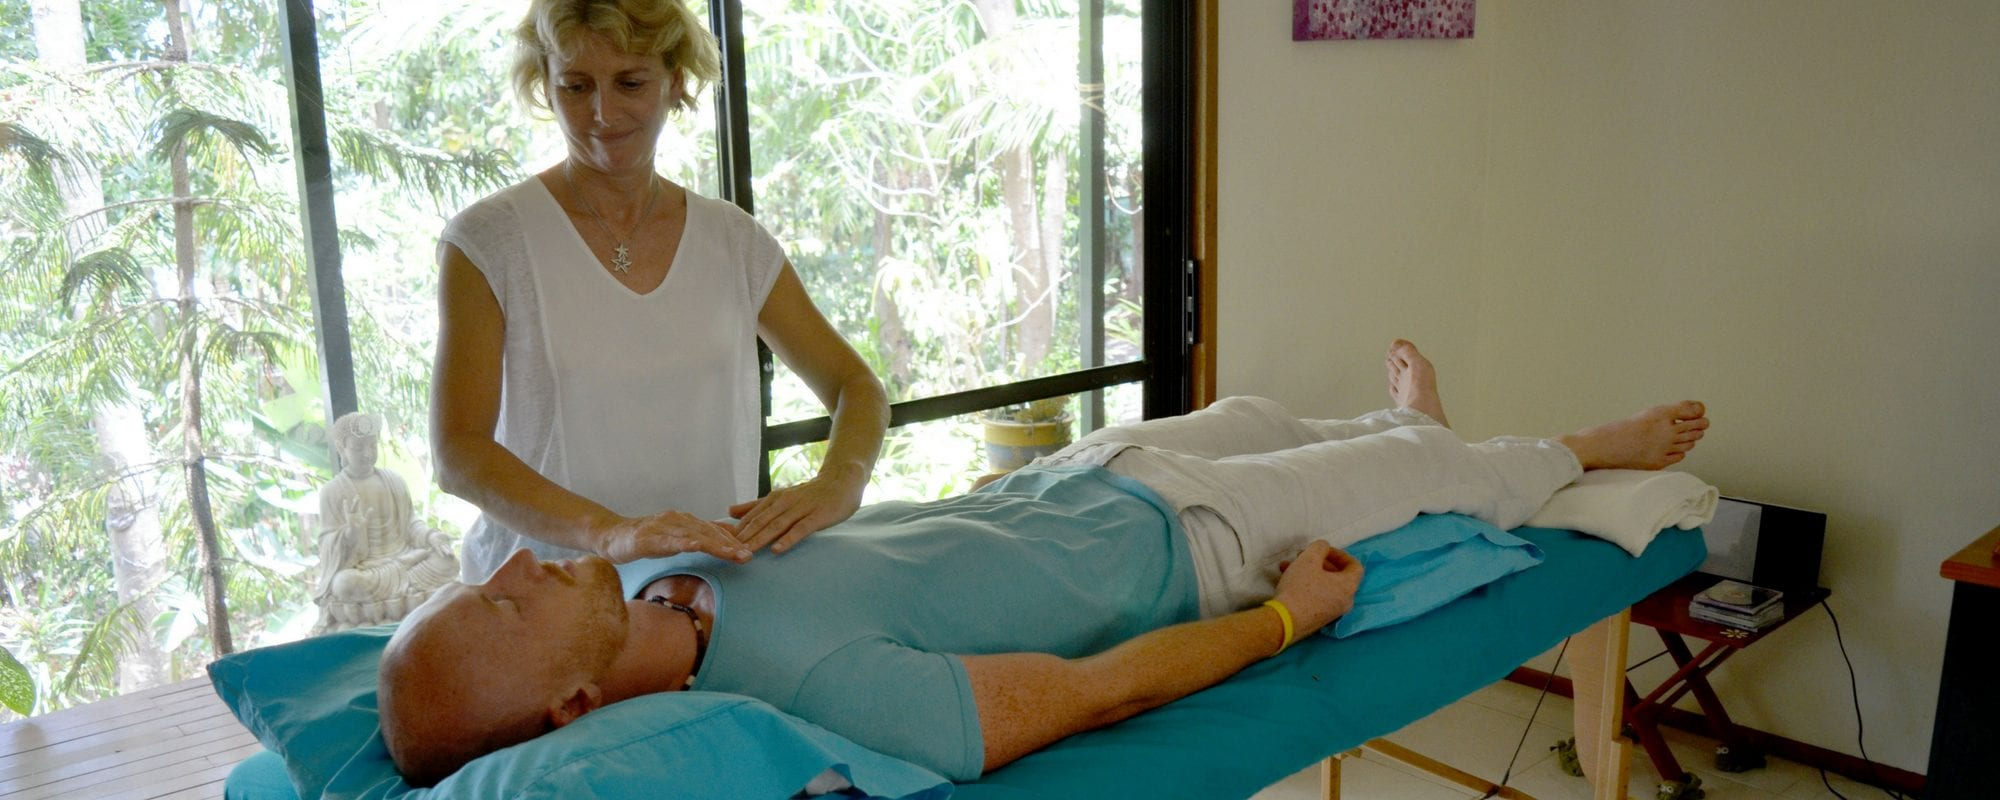 Julie Heskins from Rainfores Reiki in Cairns demonstrates reiki to a student